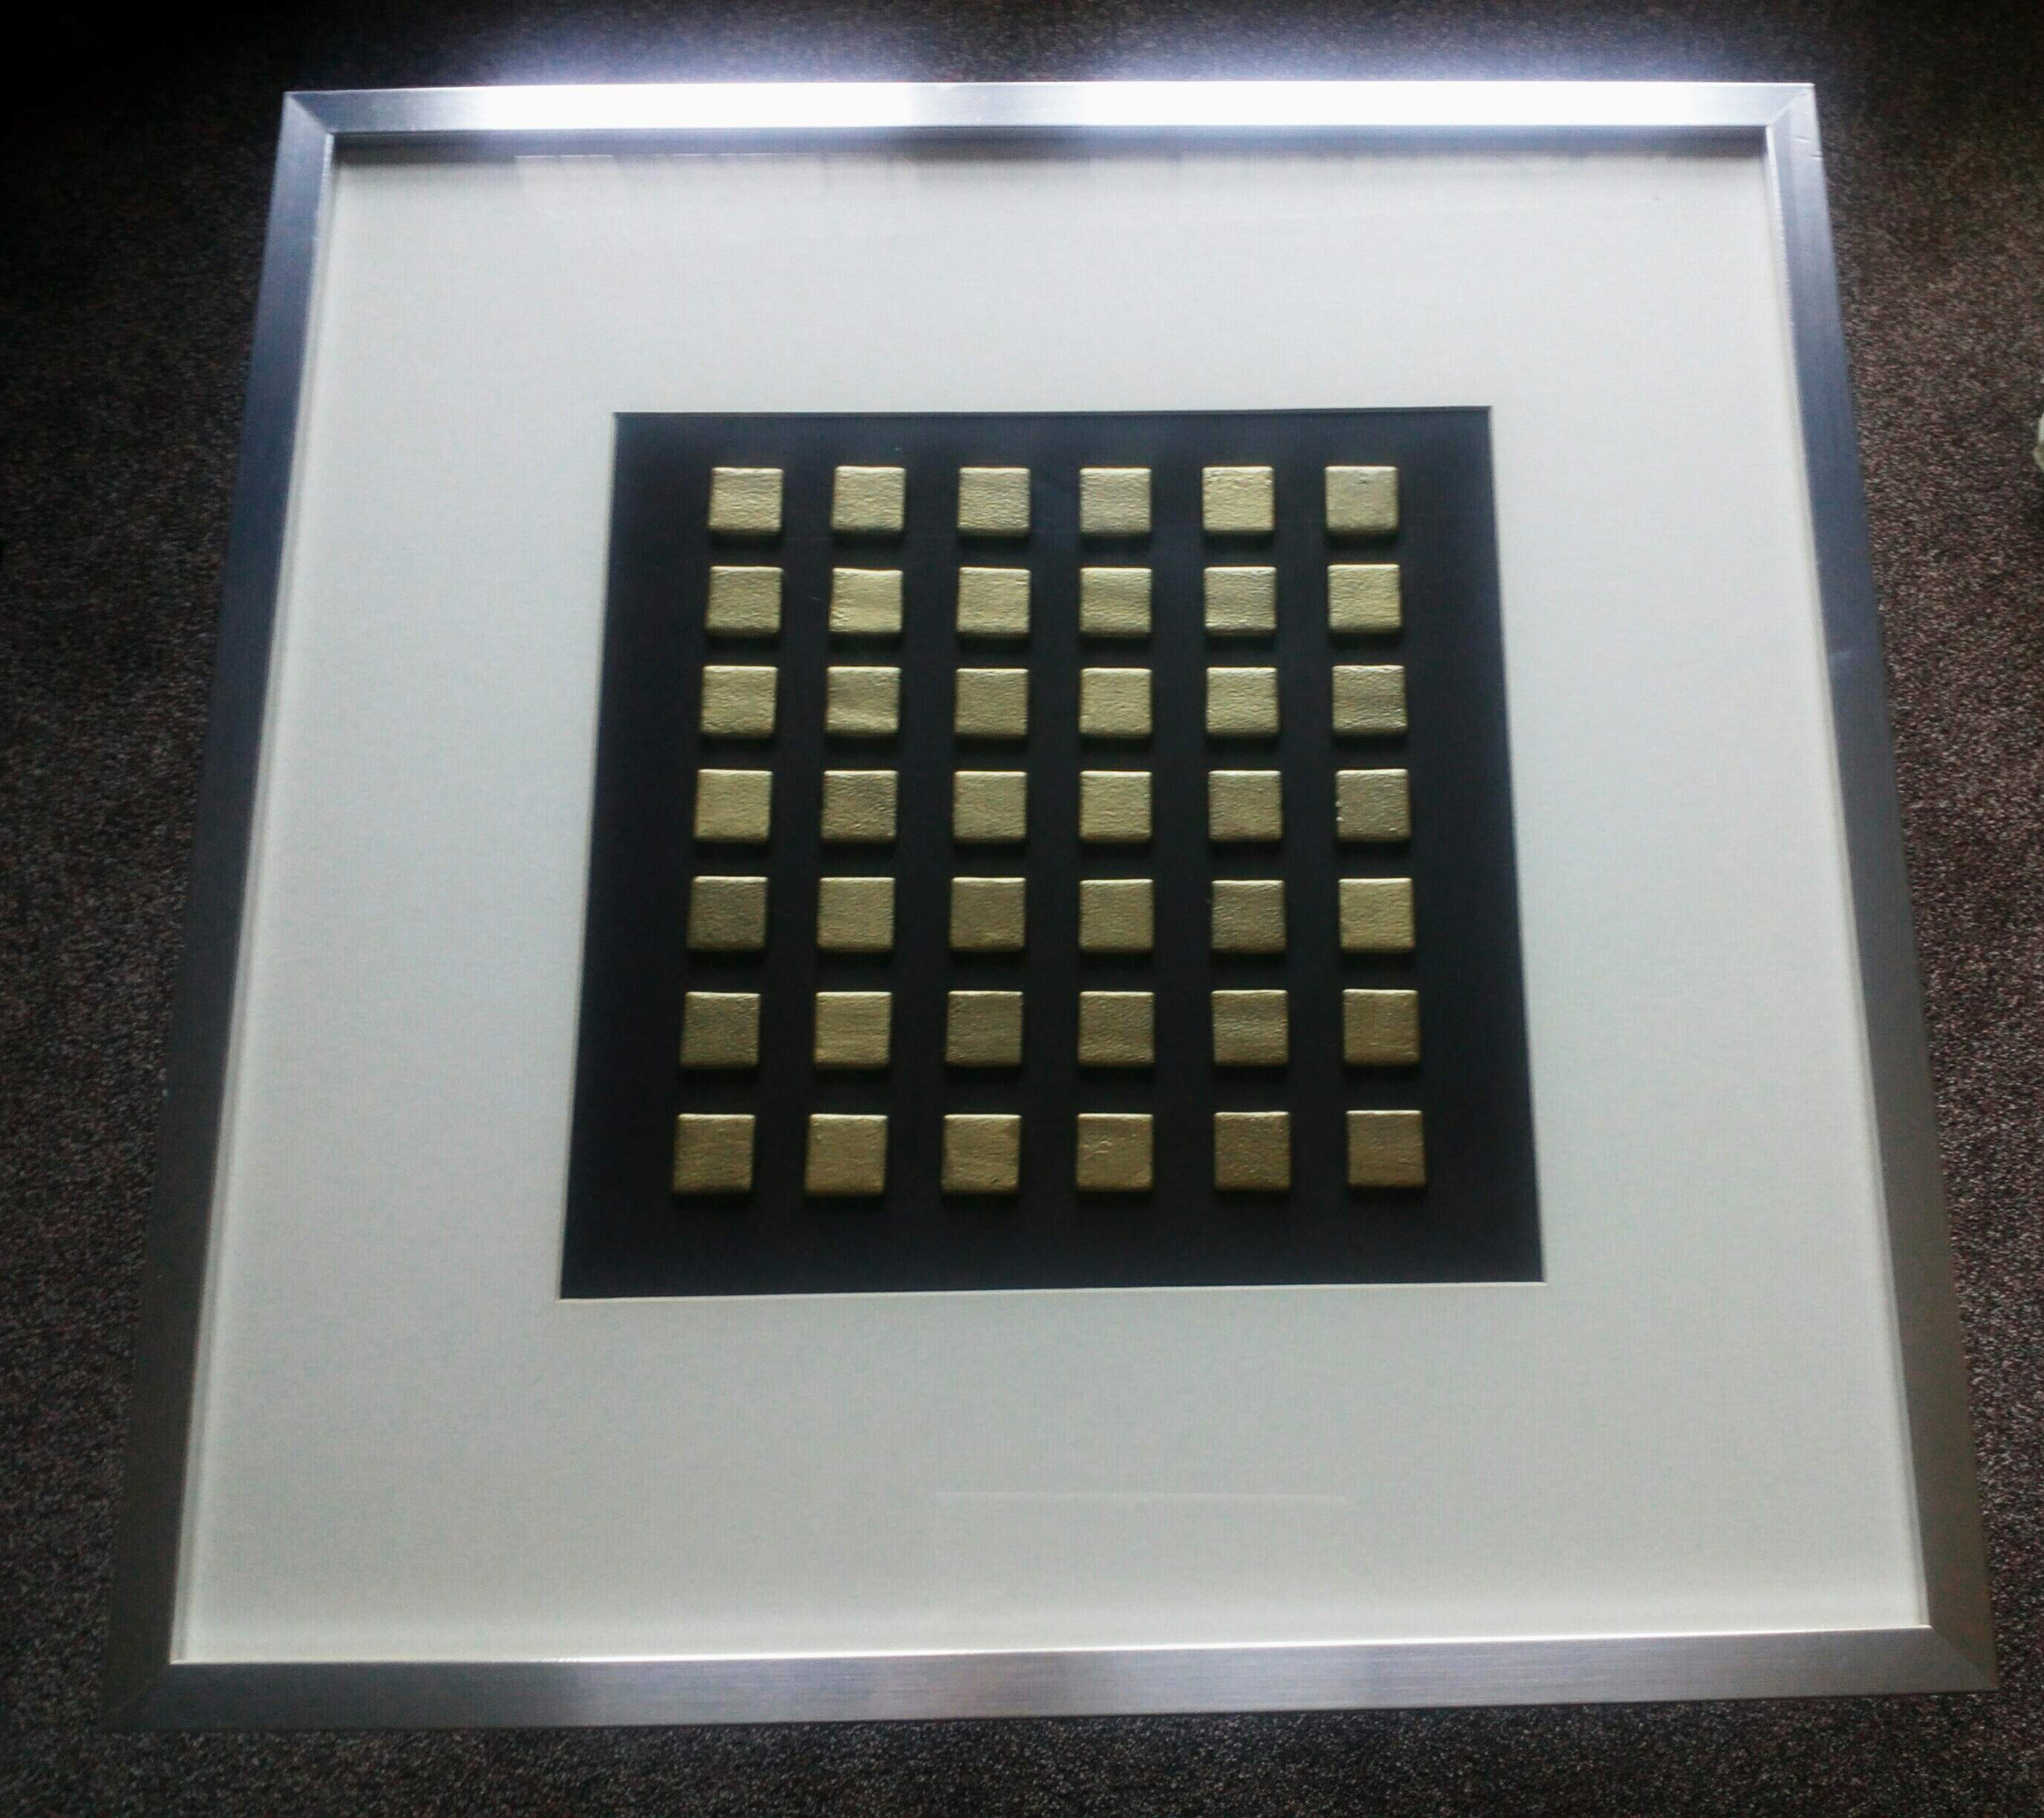 Gold glass tiles mounted on board. Brushed aluminium frame.